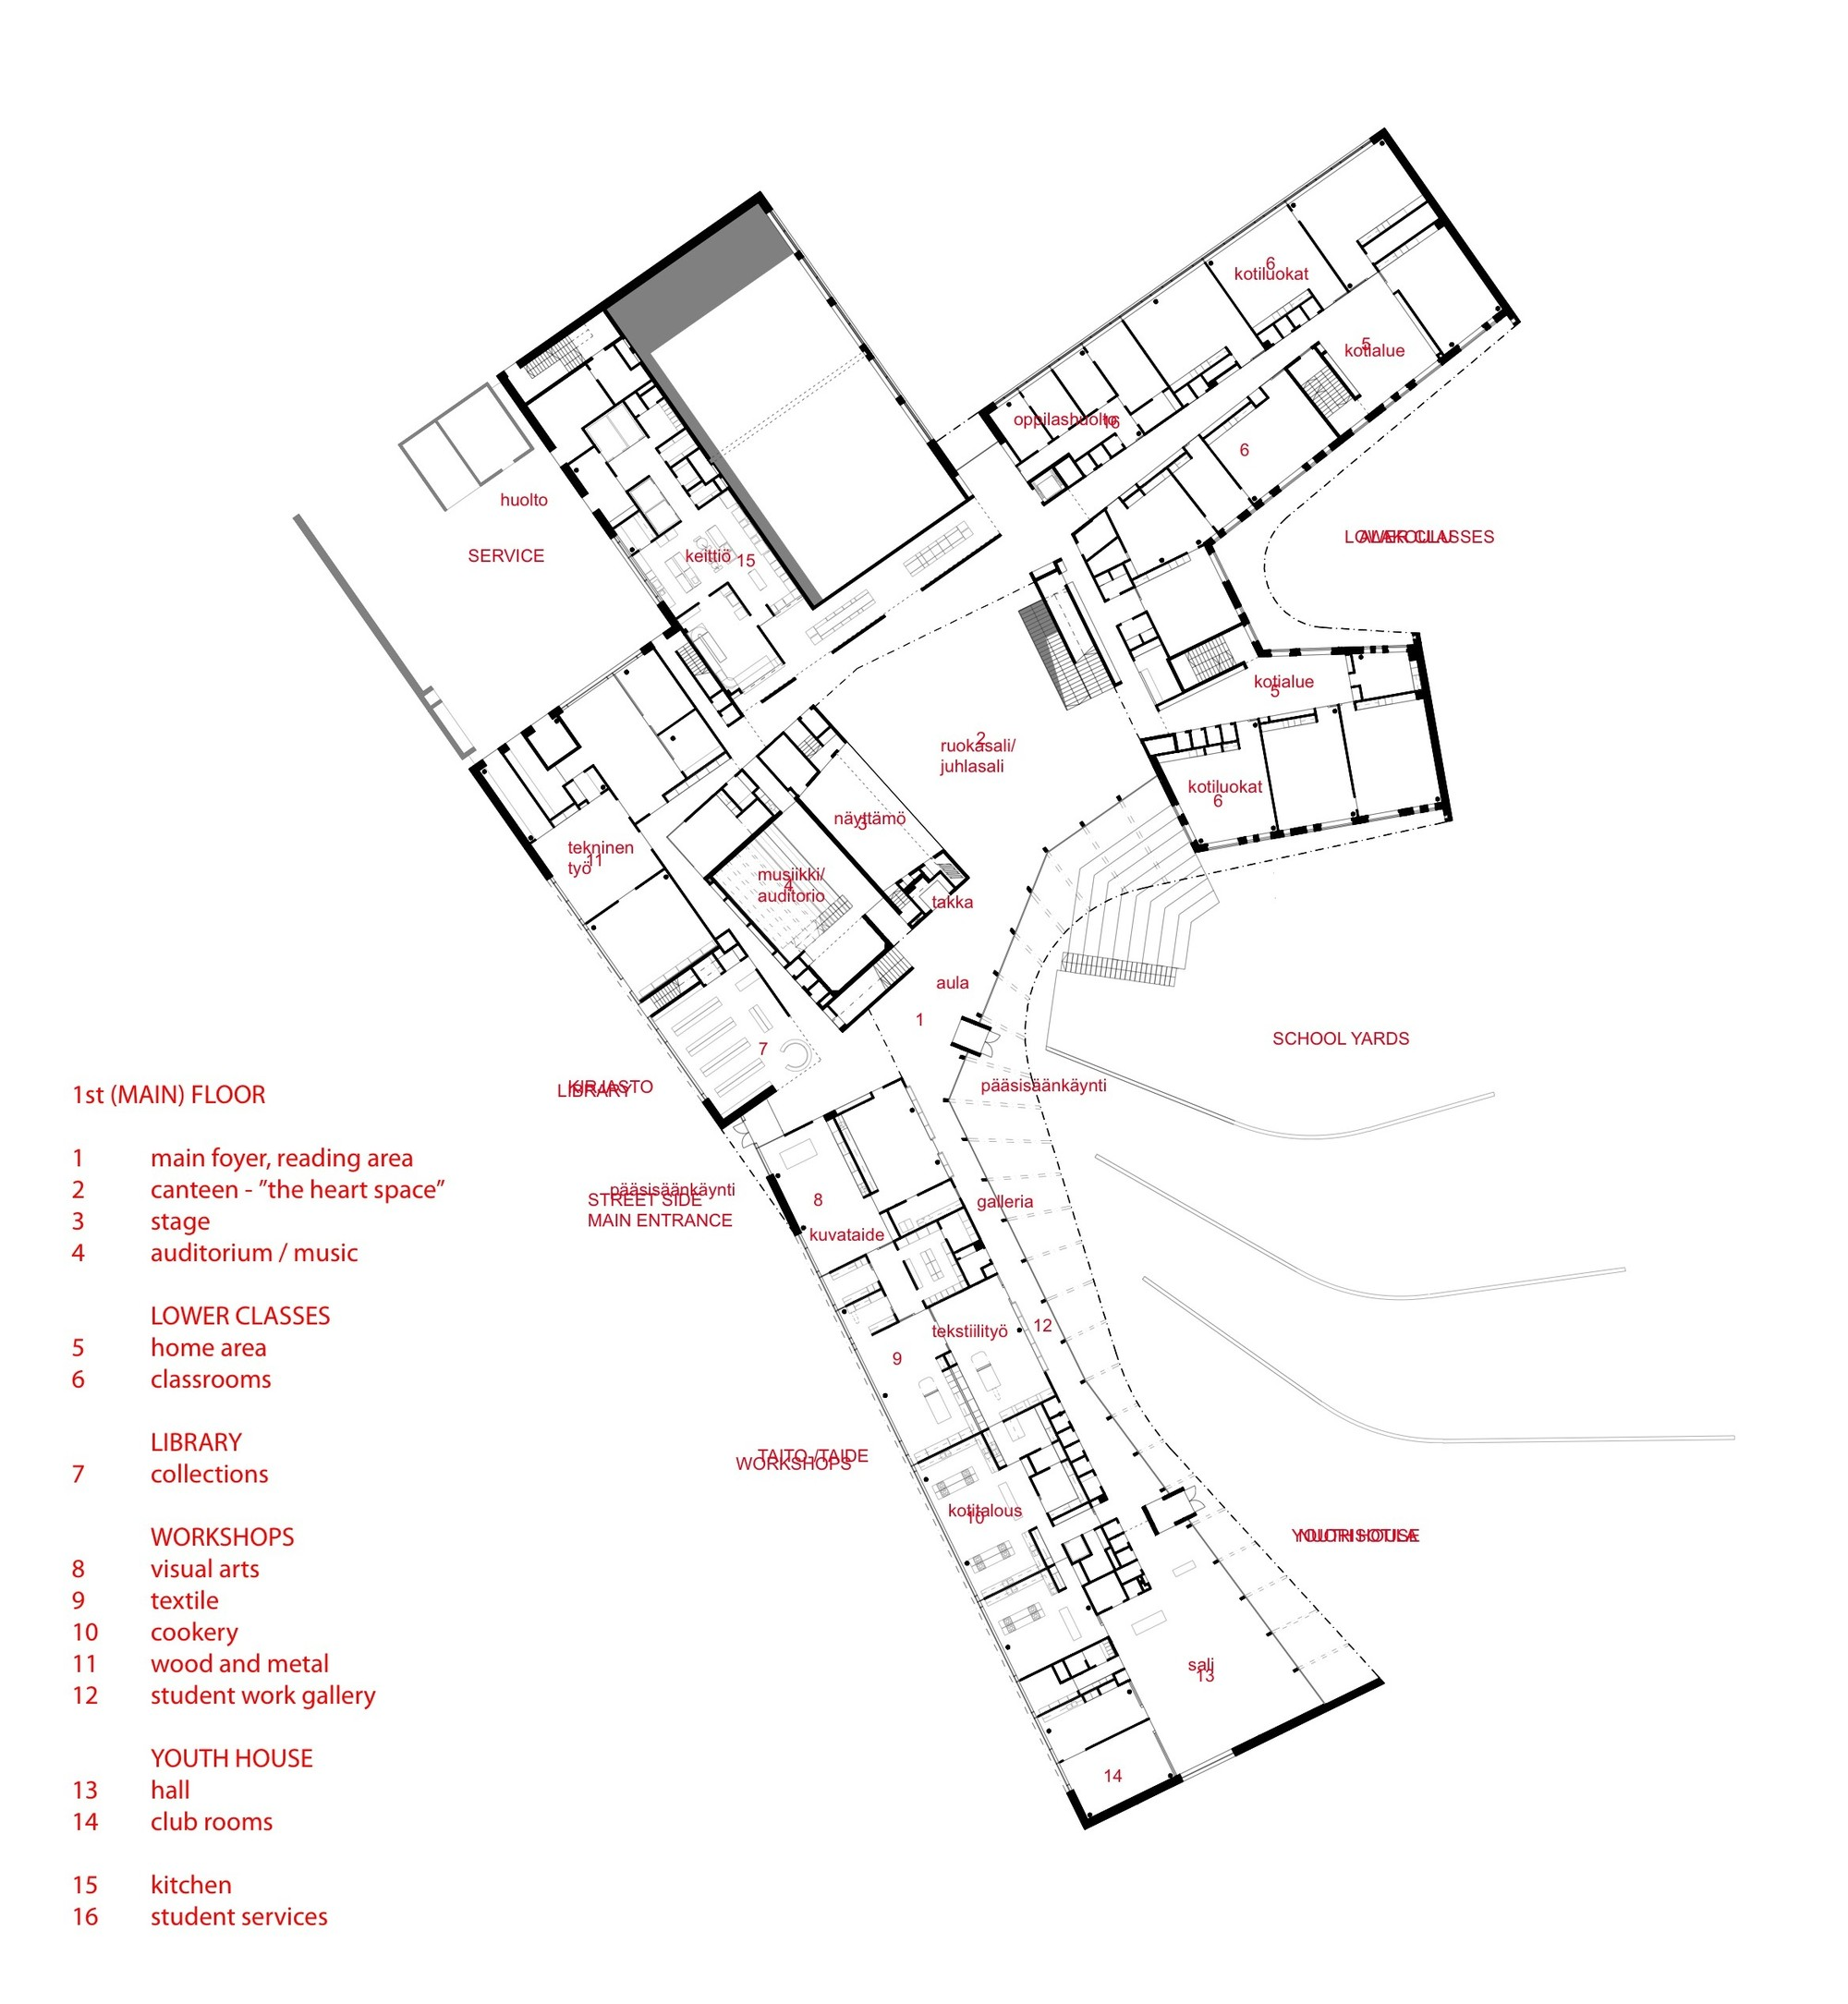 http://images.adsttc.com/media/images/51ef/57e4/e8e4/4e94/e500/00d6/large_jpg/First_Floor_Plan.jpg?1374640076